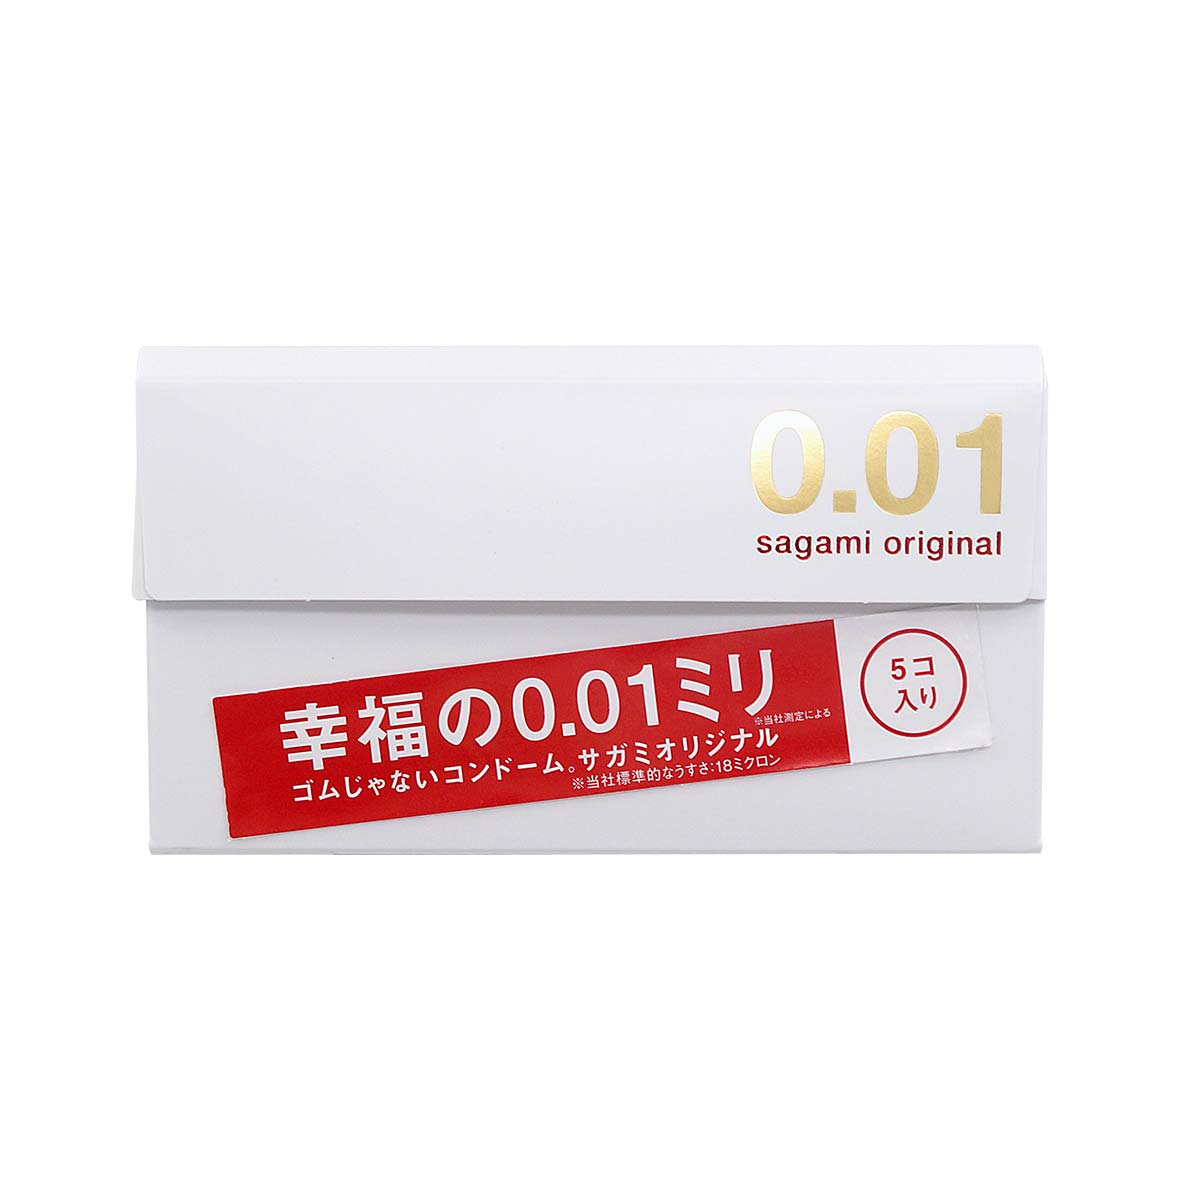 Sagami Original 0.01 5's Pack PU Condom (Defective Packaging)